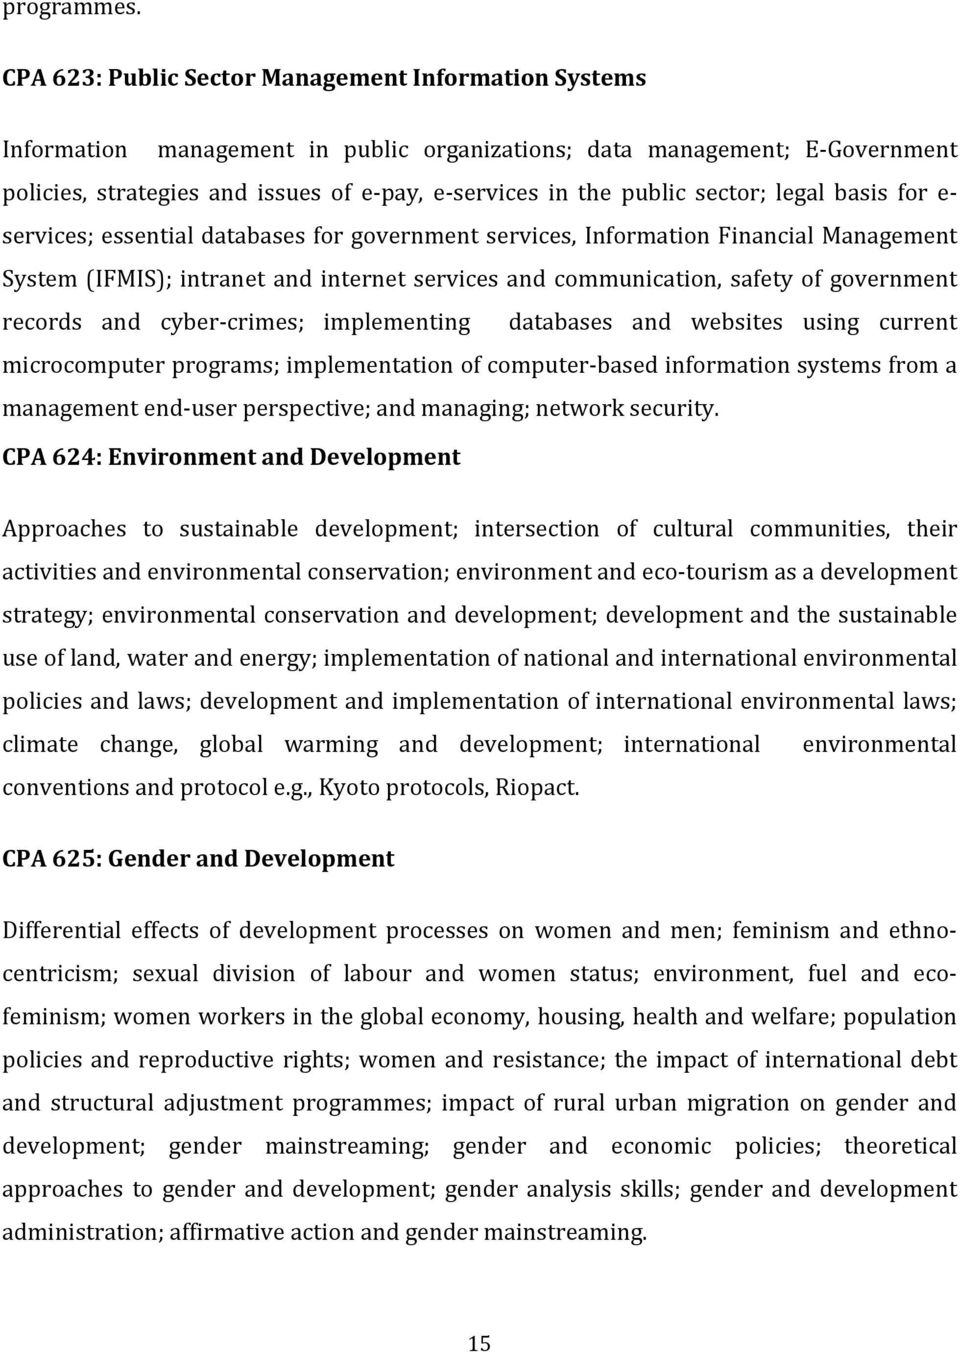 sector; legal basis for e- services; essential databases for government services, Information Financial Management System (IFMIS); intranet and internet services and communication, safety of